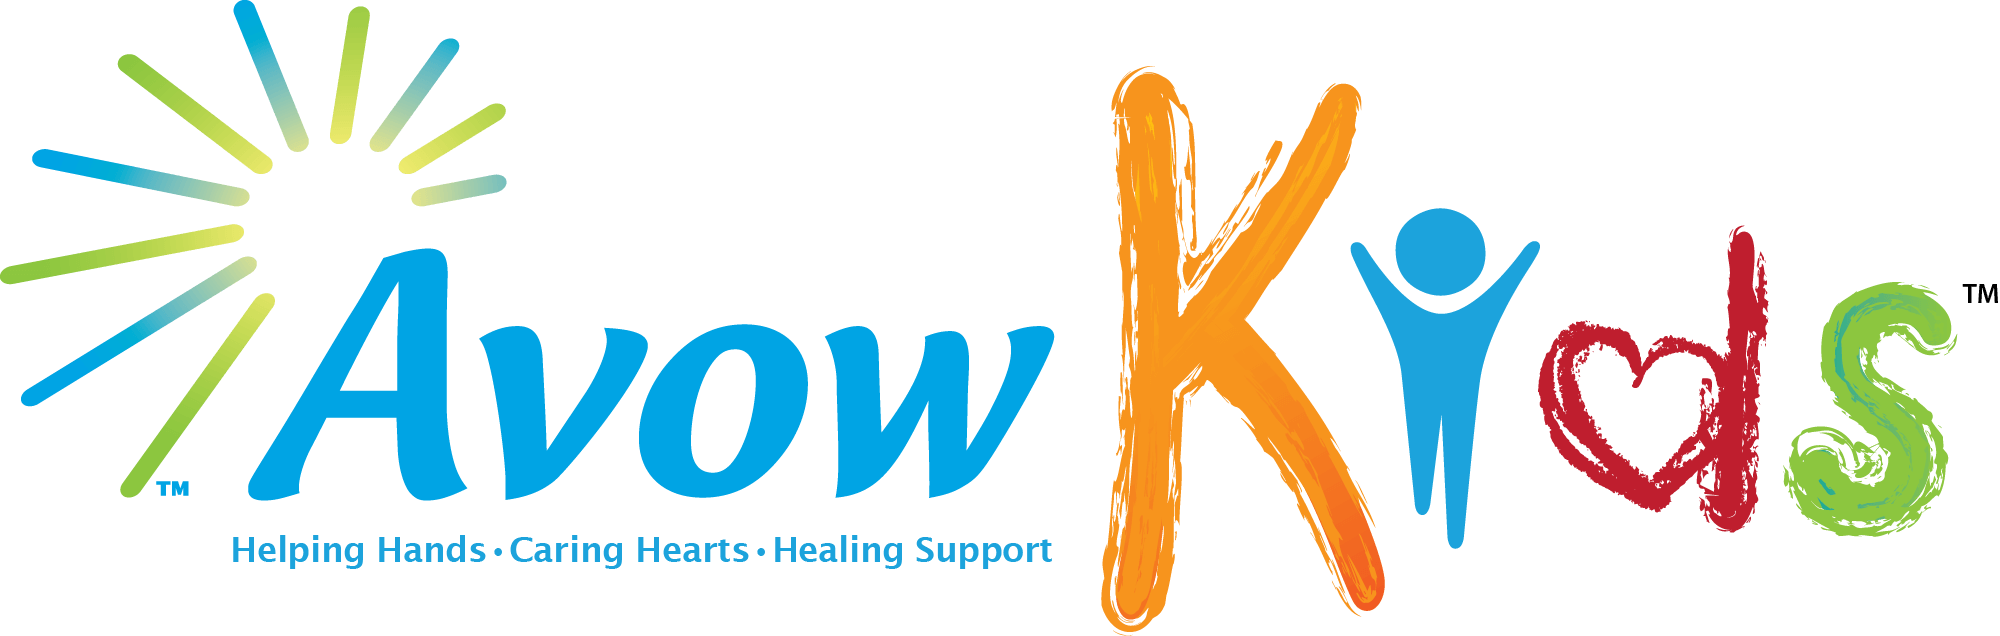 Logo Trademarked for Avow Kids